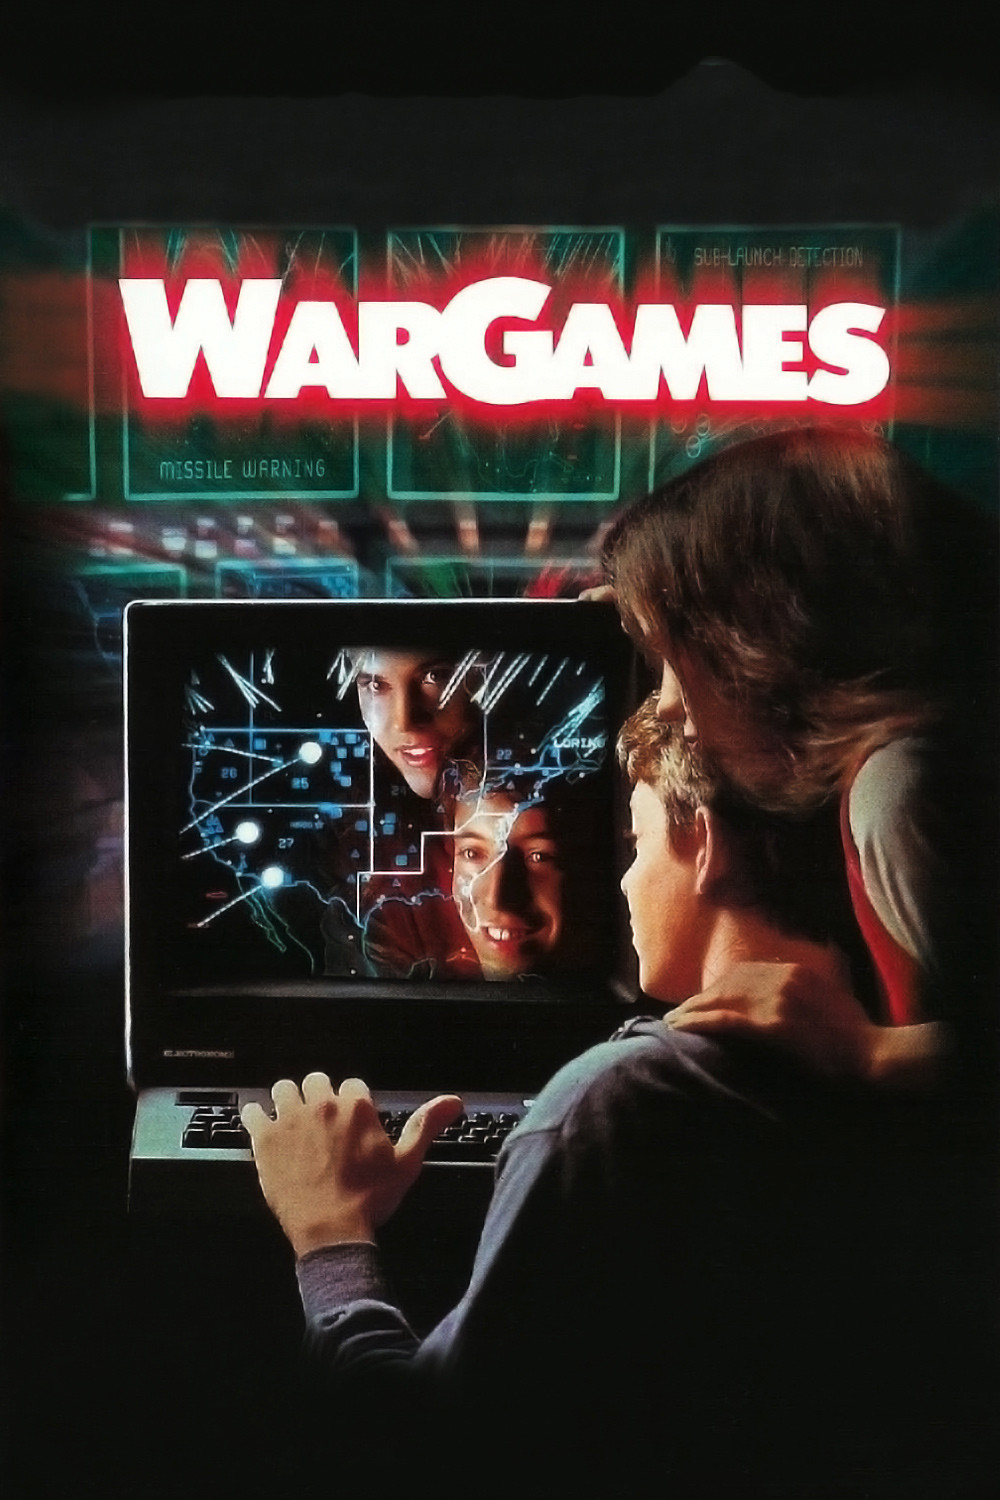 Williams film review john badham double feature wargames and short